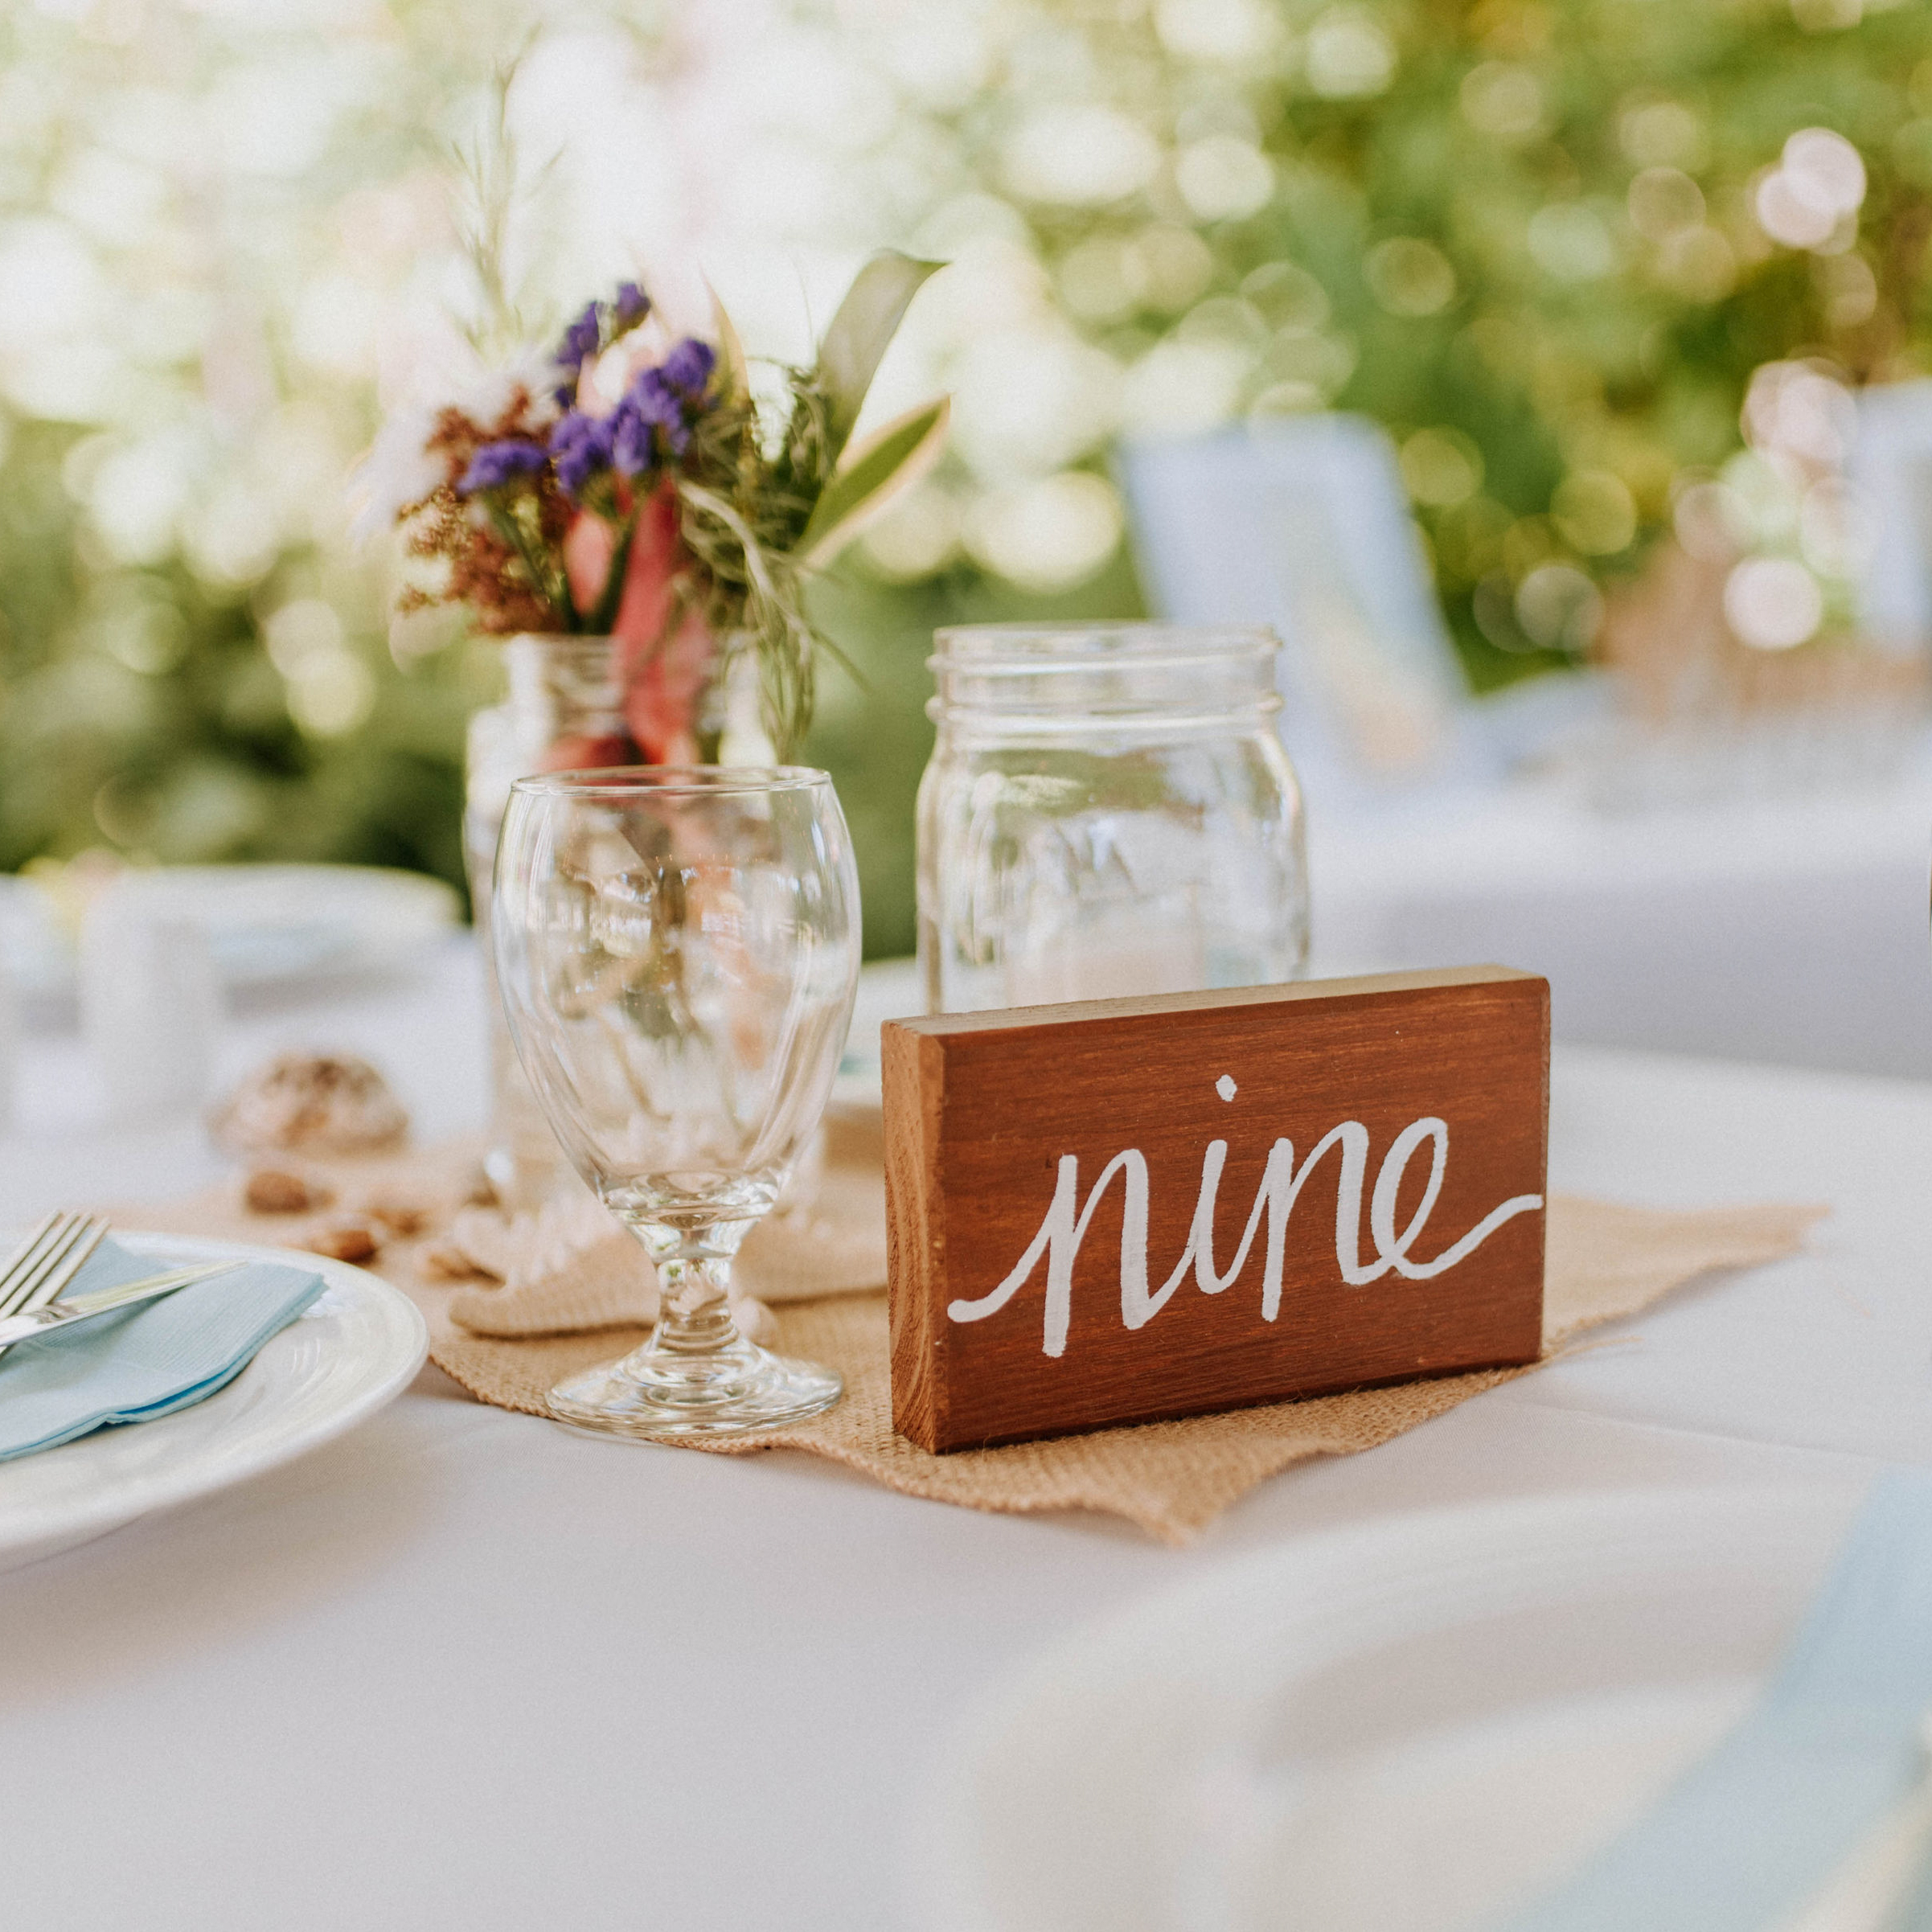 tropical Jamaican style wedding decor for tables at reception